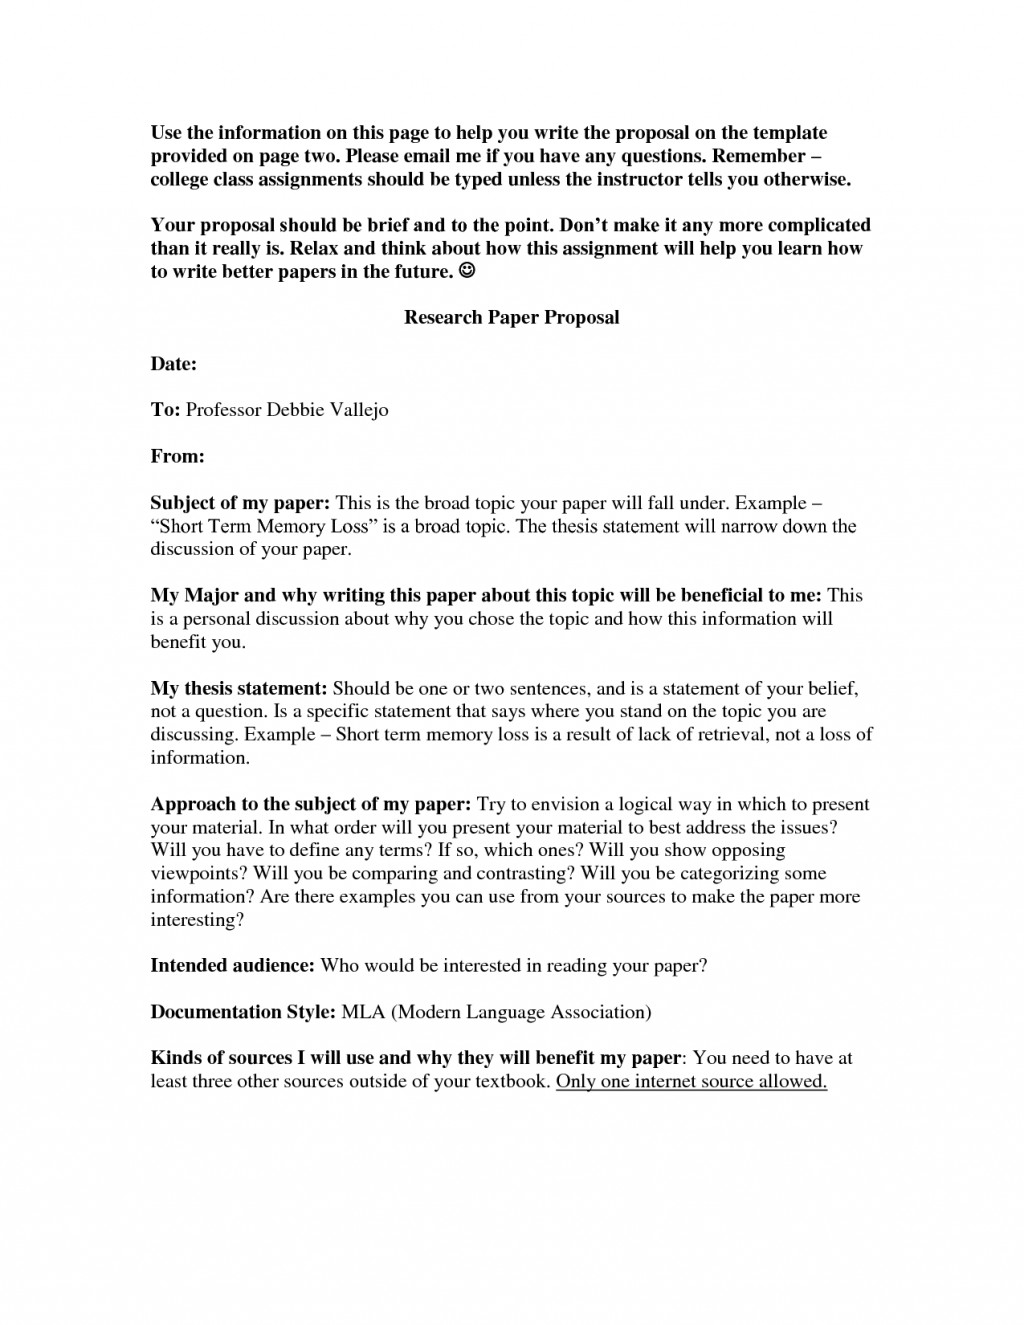 011 Proposal Argument Essay Examples Example Angel Beats 614610 Unique Large